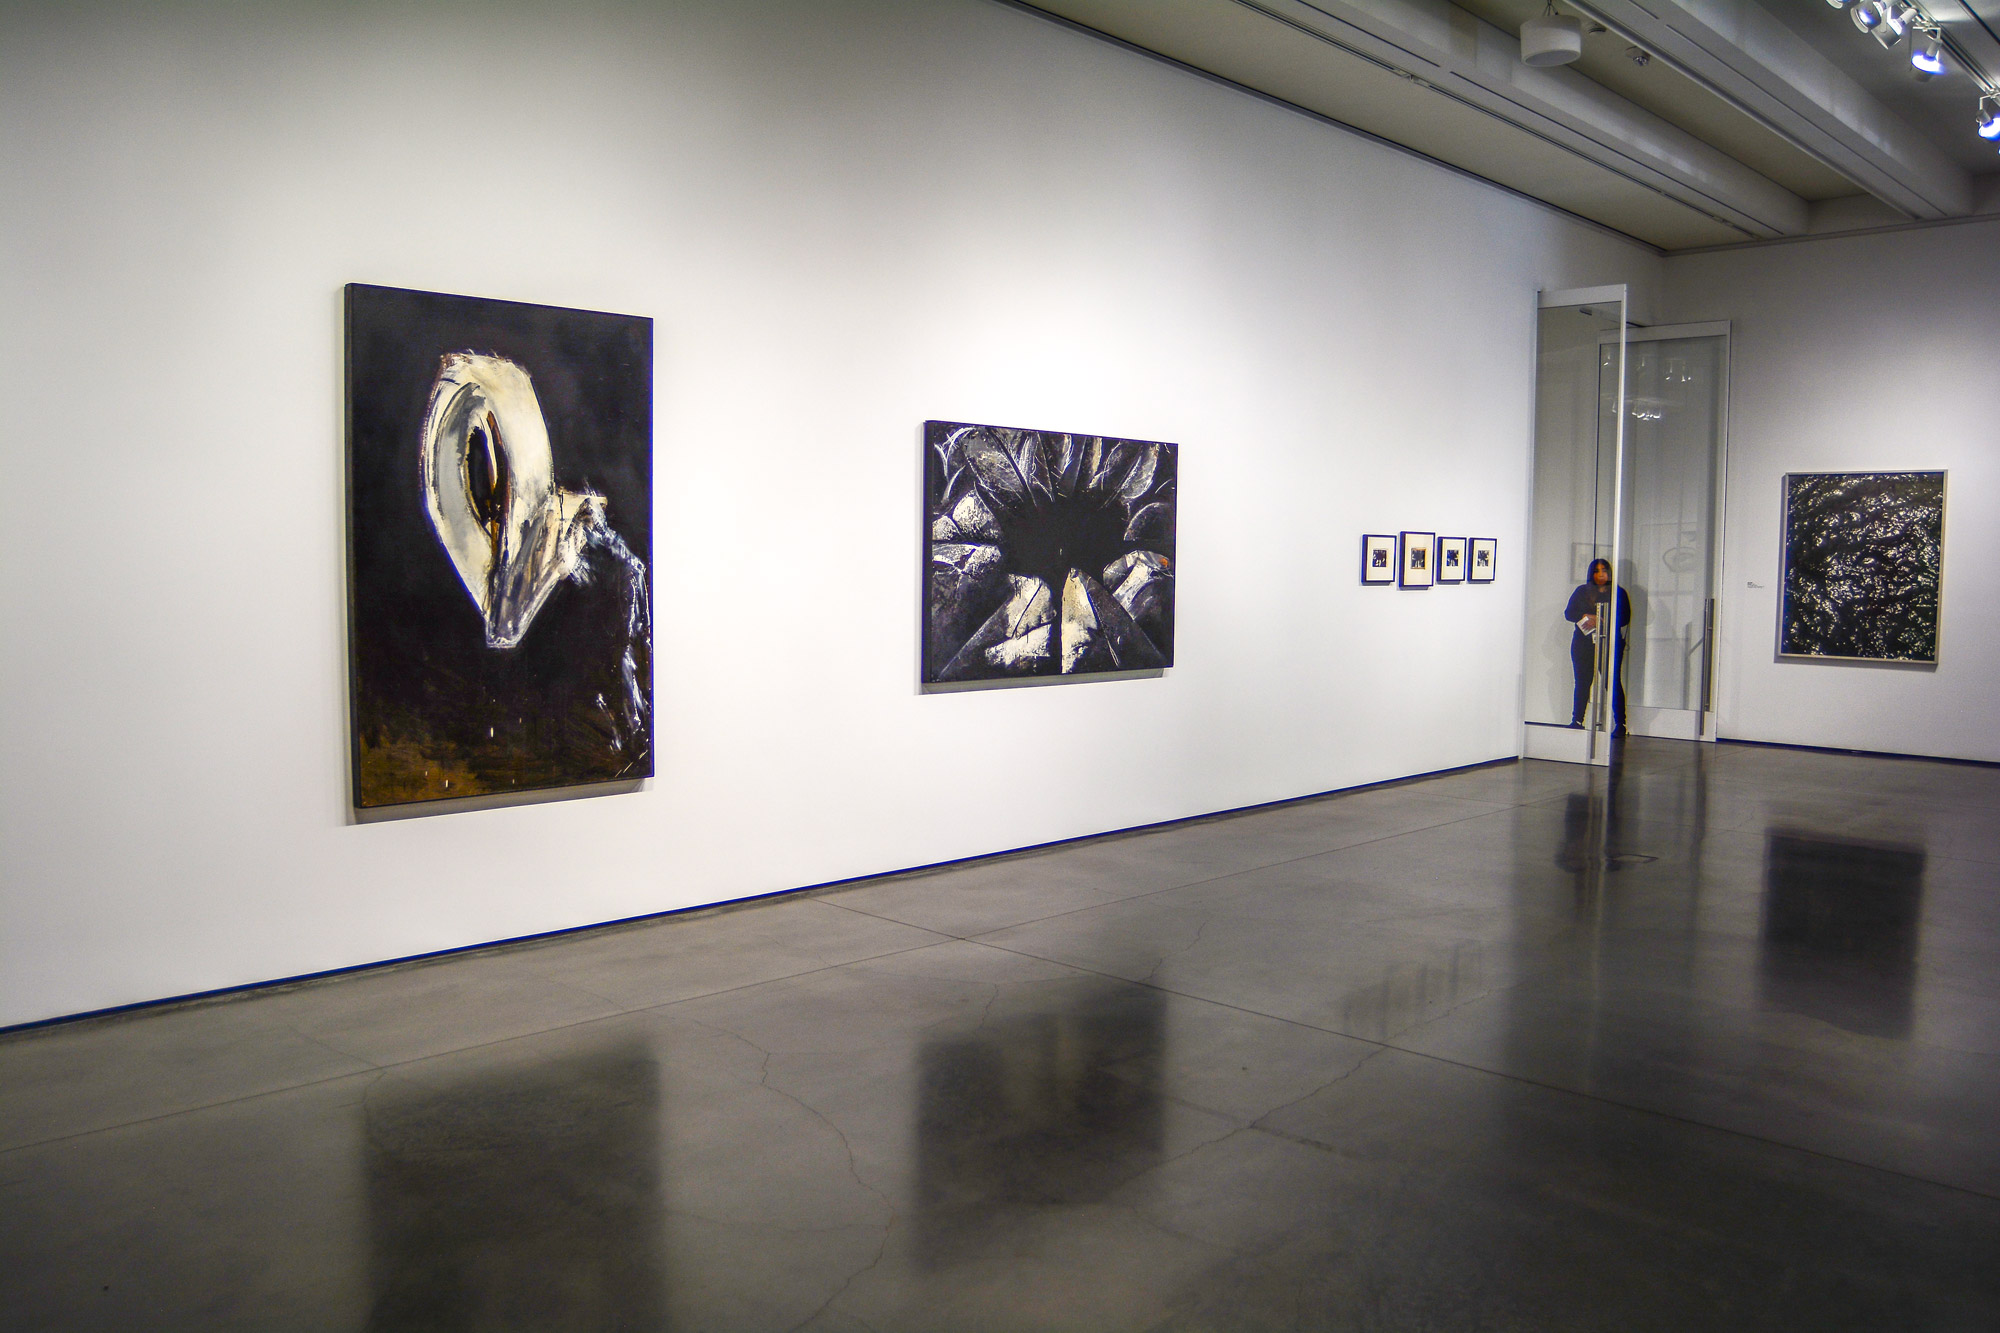 Major paintings by Jay DeFeo shown at Aspen Art Museum